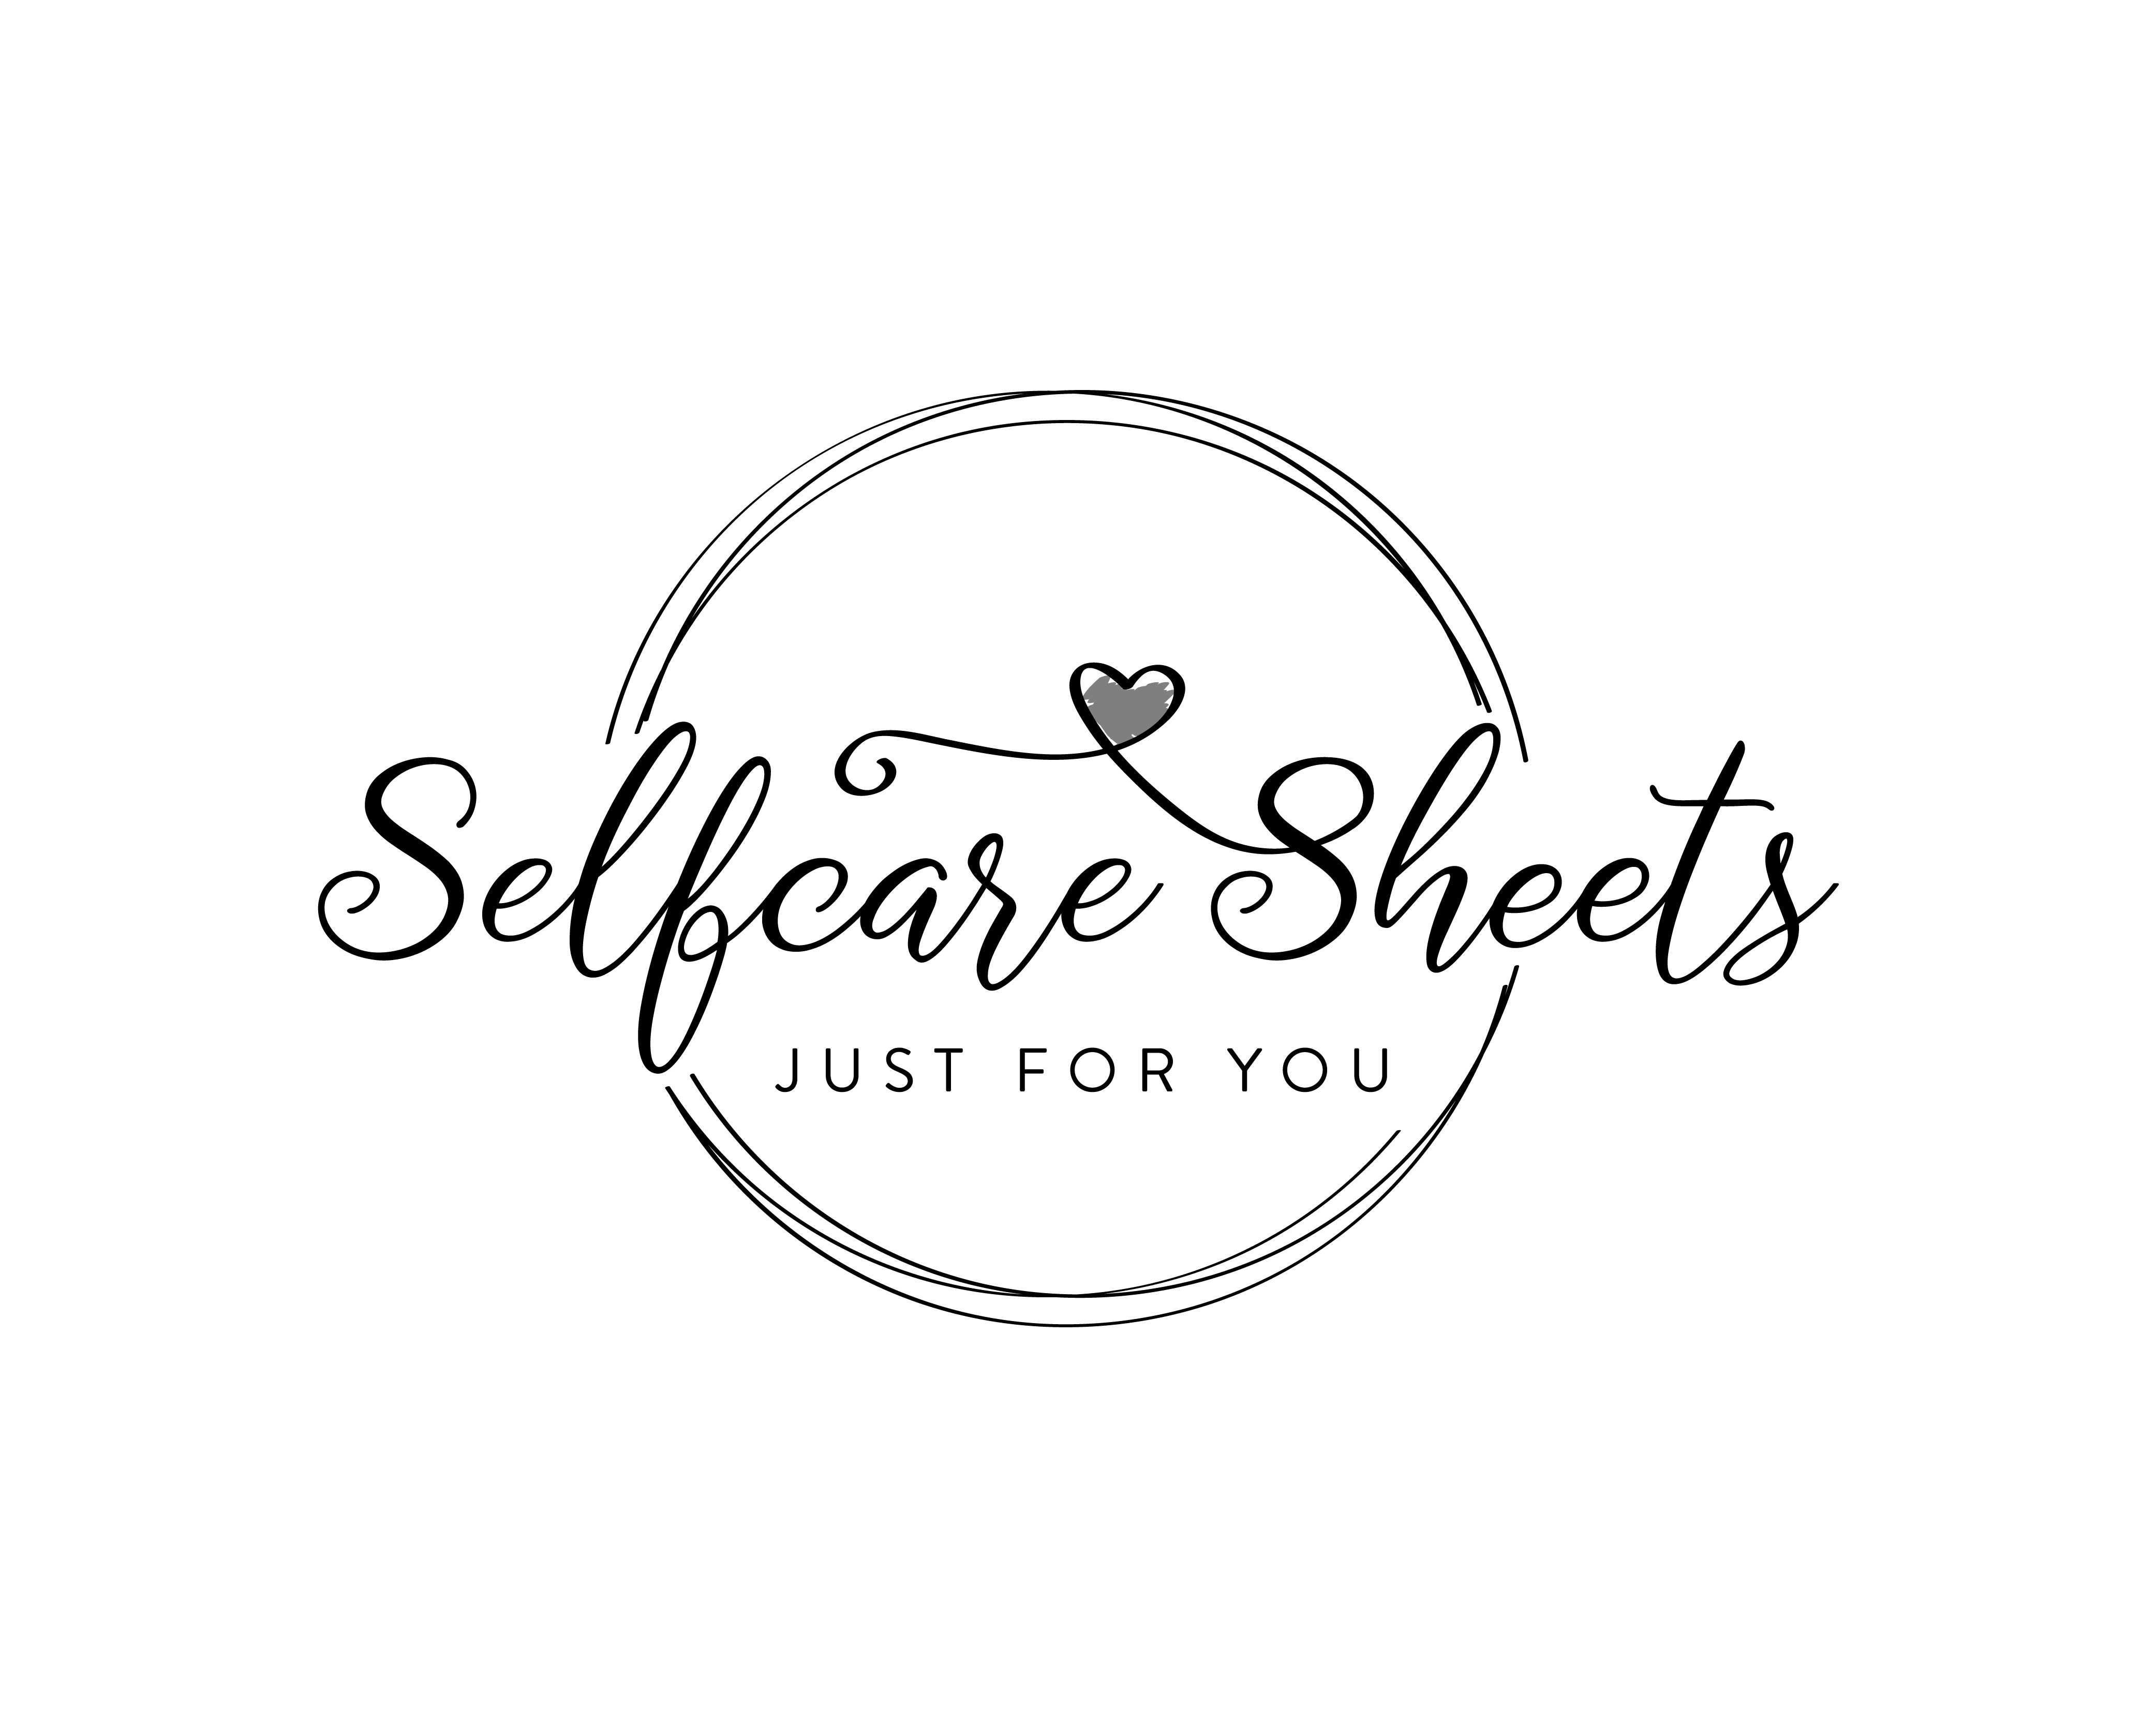 logo for selfcare sheets - love and care for yourself